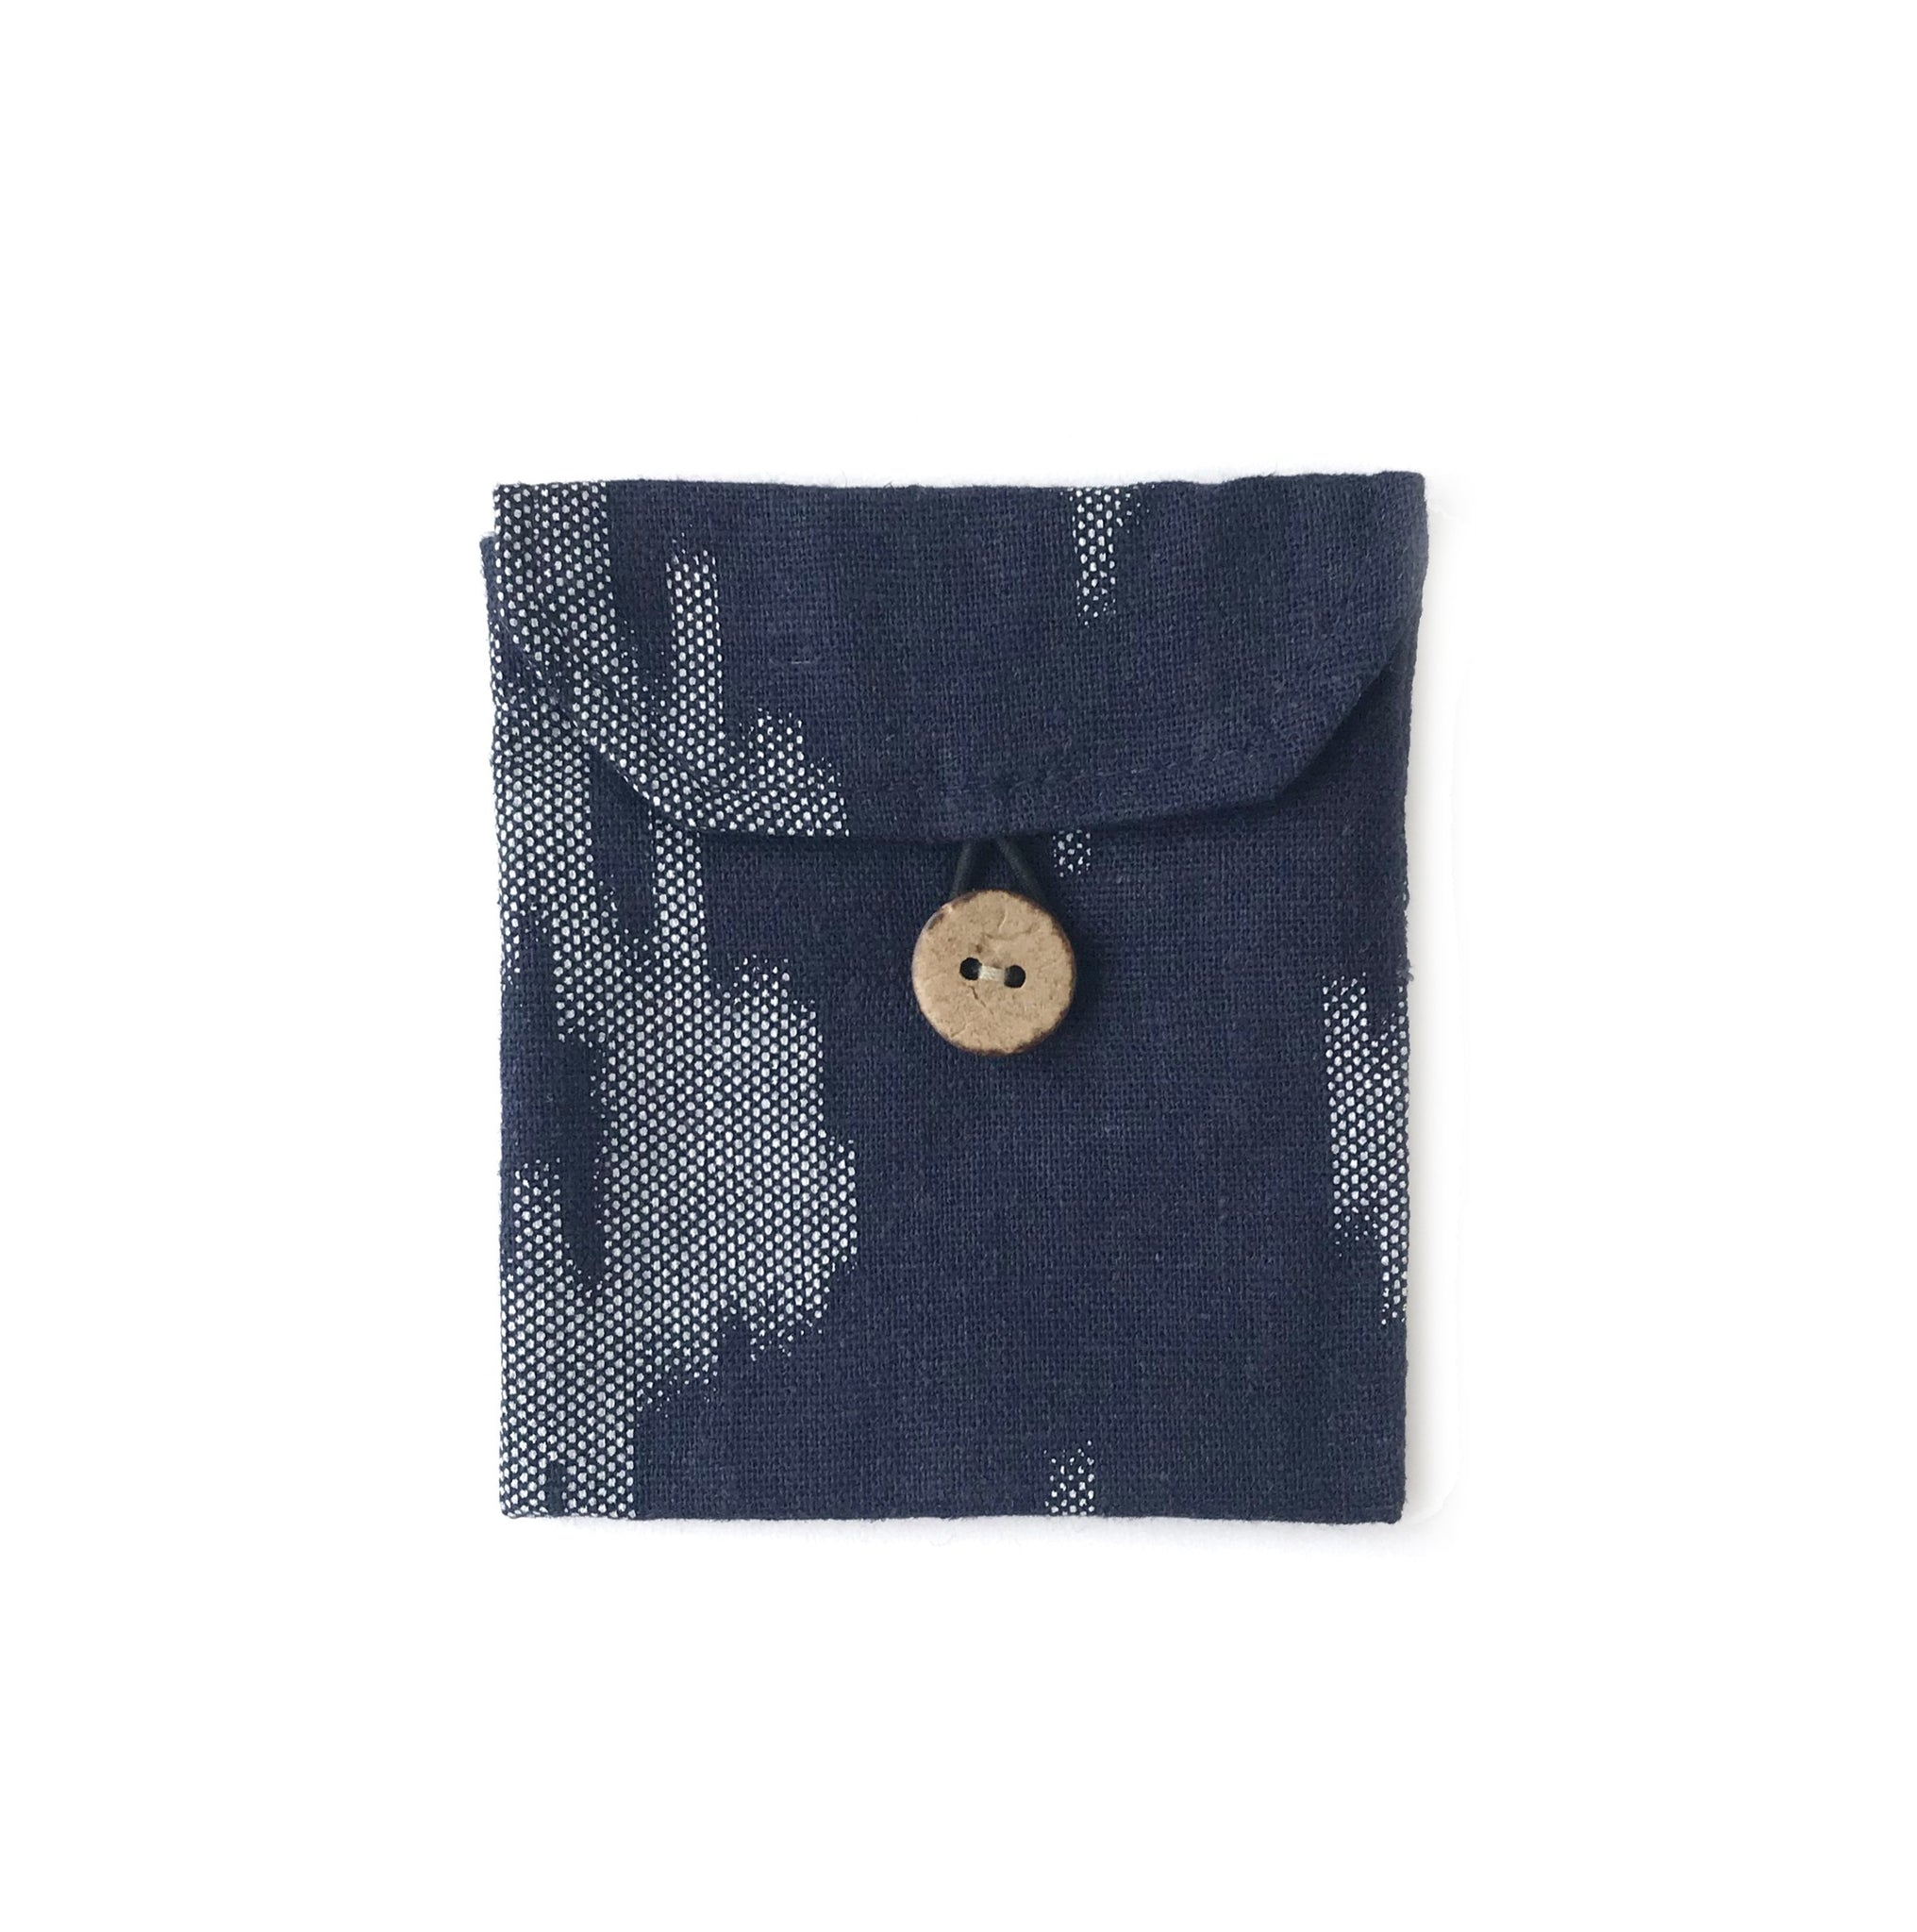 Pocket in Linen Navy Ikat - Mikmat Designs Earrings Laser Cut Designs